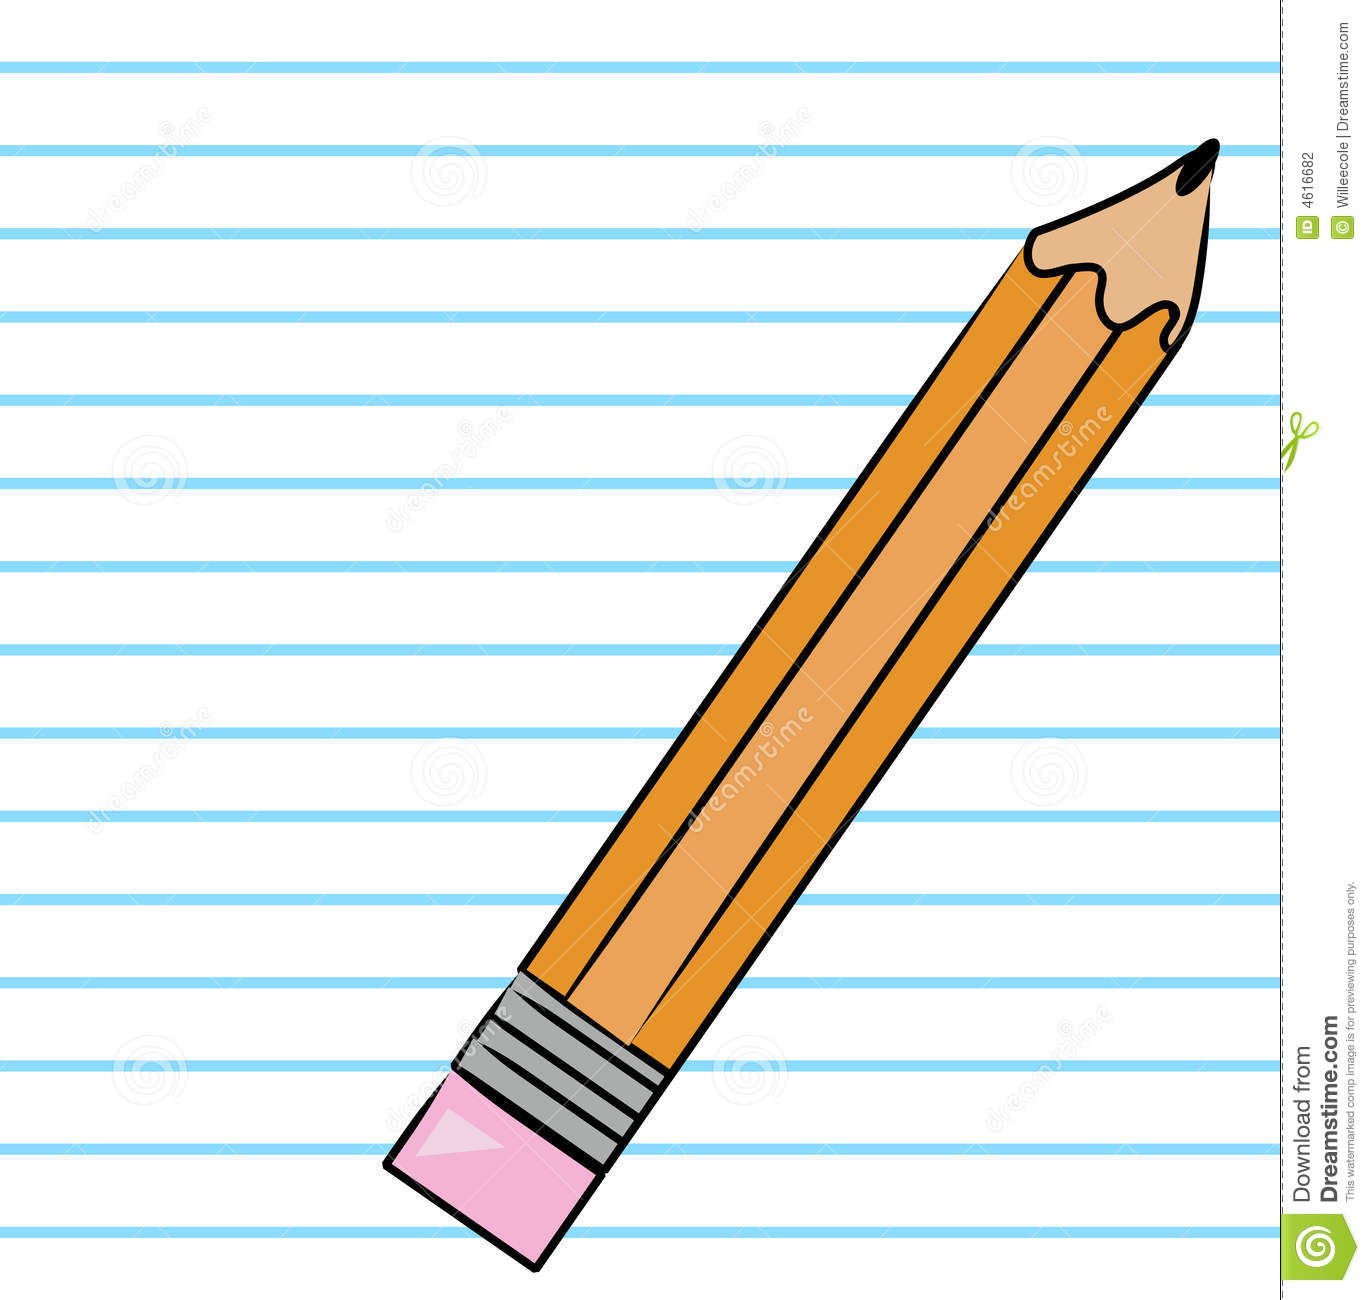 Paper and pencil clipart 5 » Clipart Station.